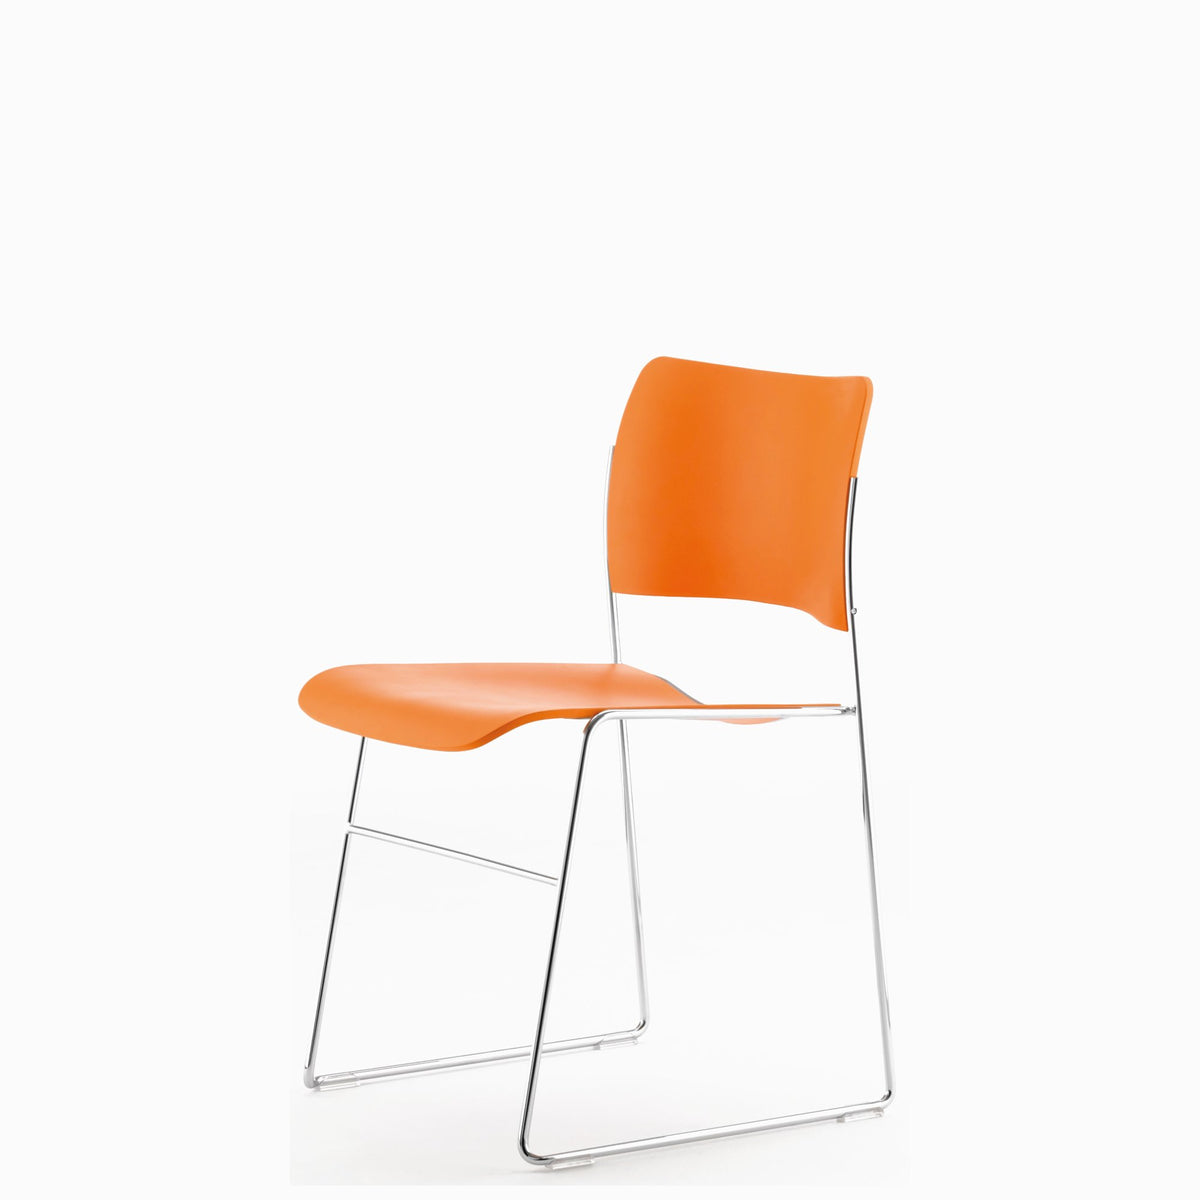 HOWE Plastic Resin Mandarin Chair with Chrome Base by David Rowland